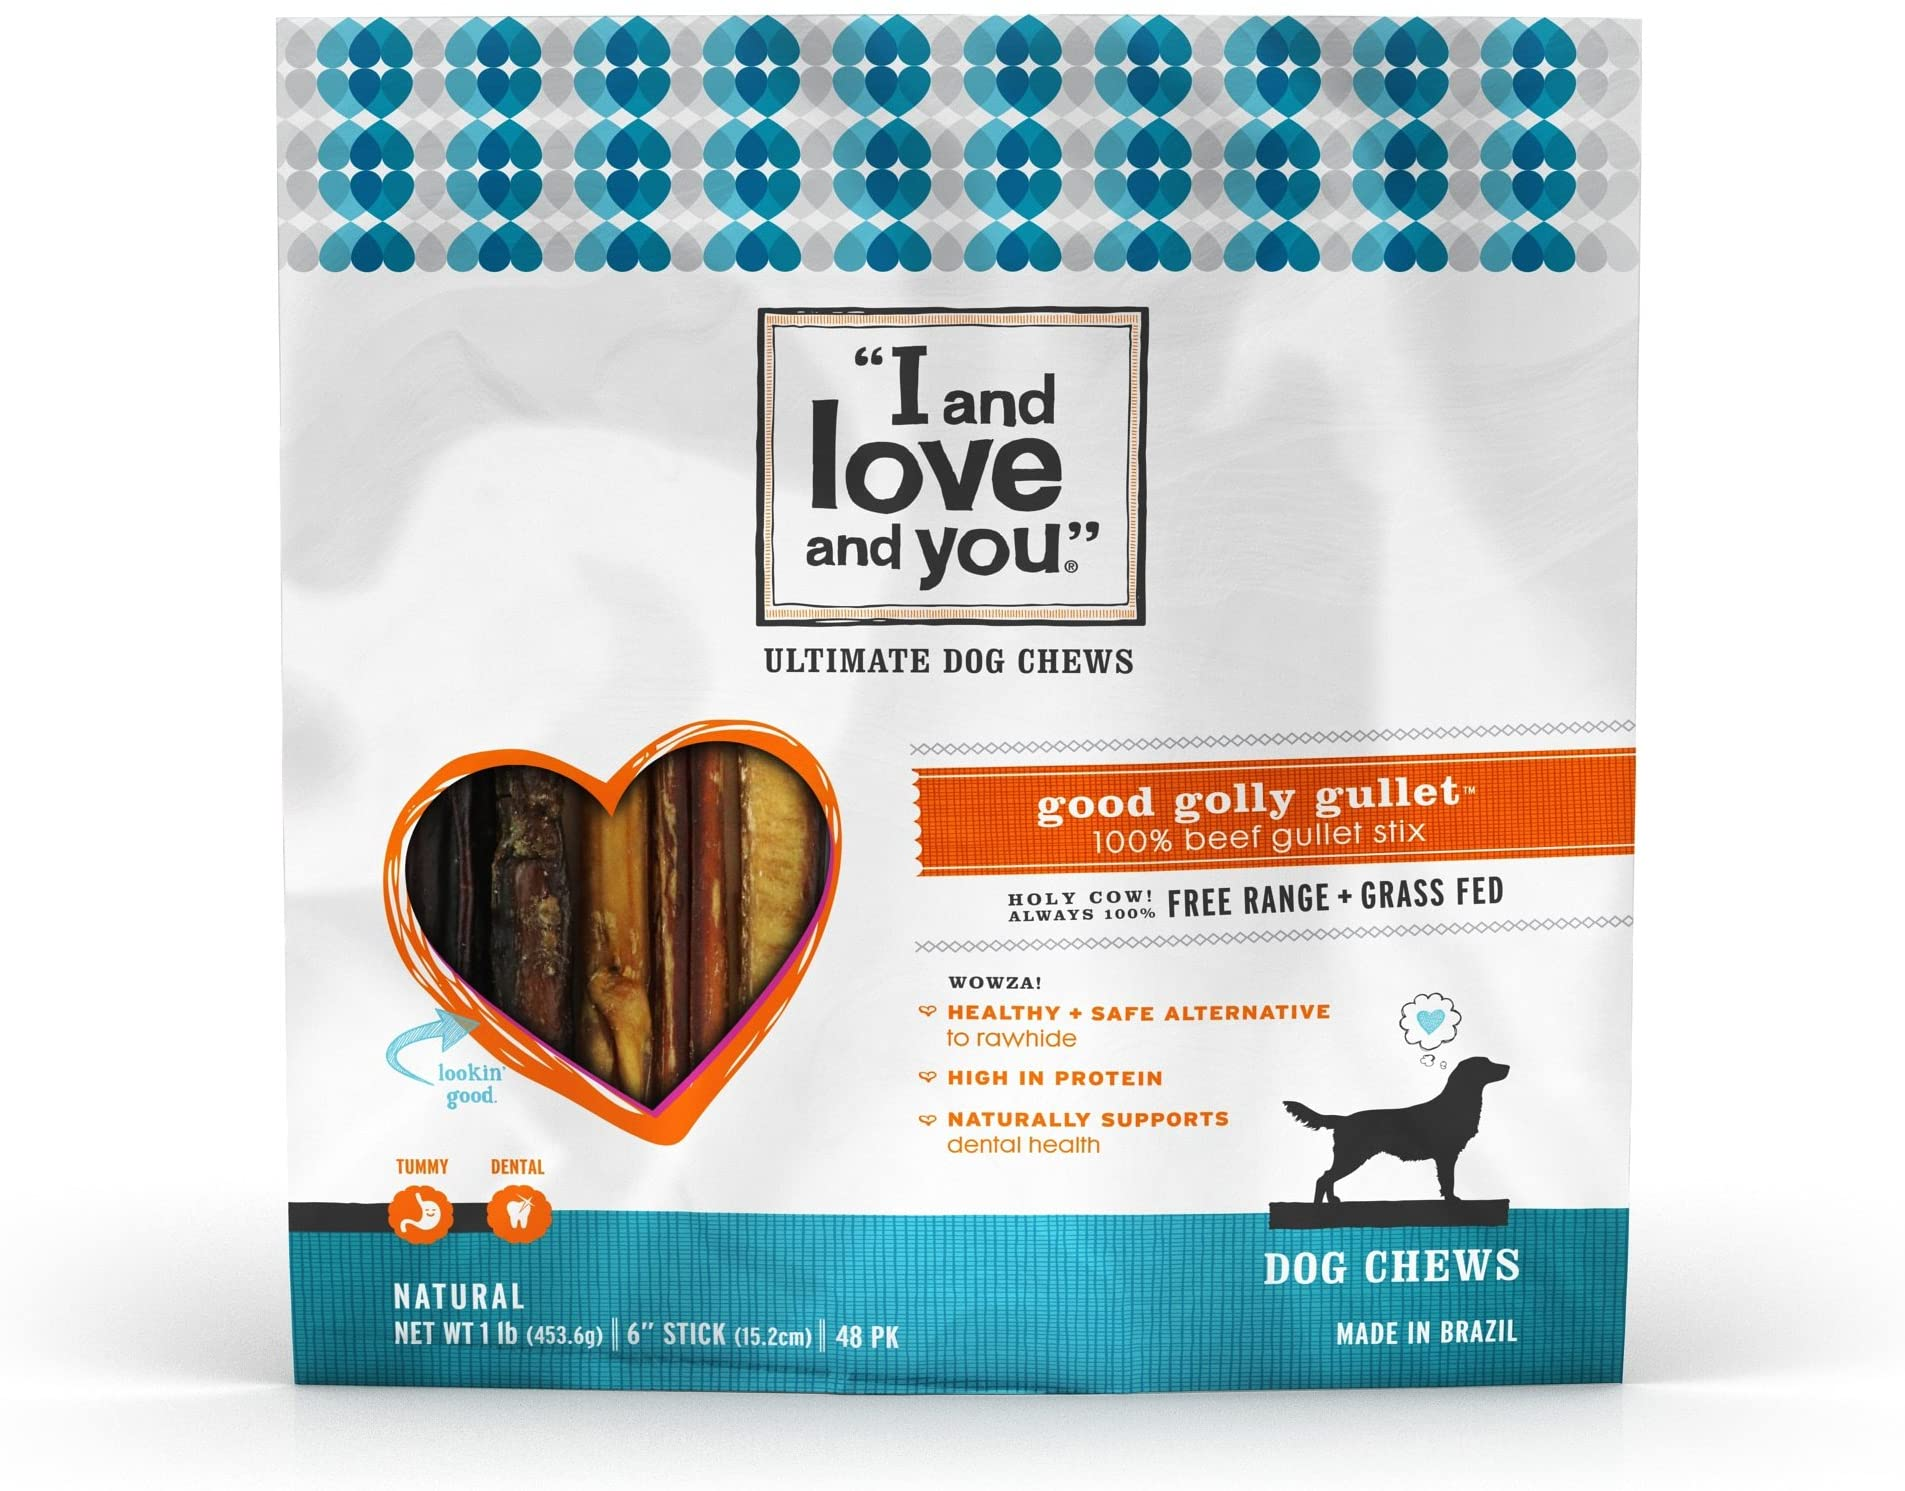 I and love and you Good Golly Beef Gullet Sticks - Grain Free Dog Chews, 100% Beef Gullet, 48 Pack of 6-Inch Sticks